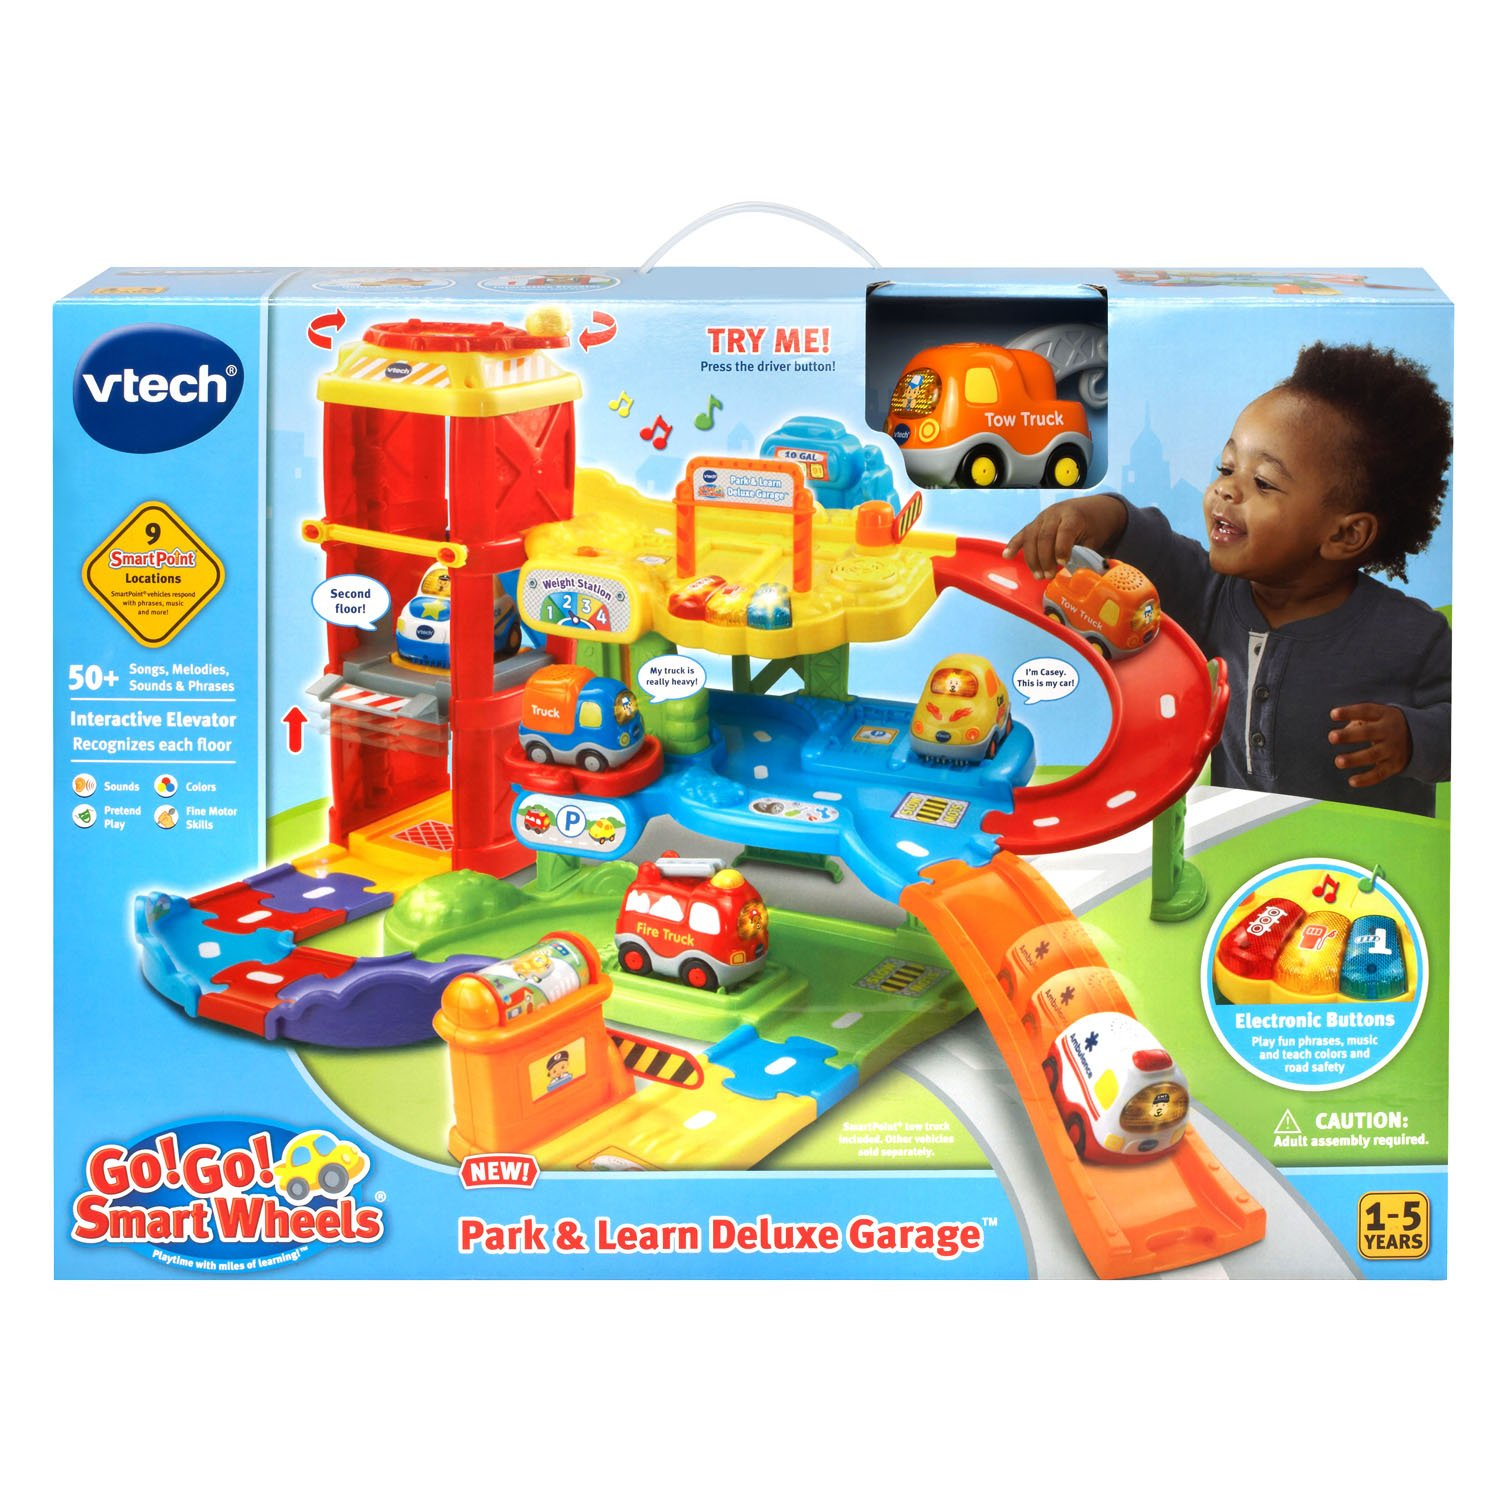 Buy VTech Go Go Smart Wheels Park and Learn Deluxe Garage line